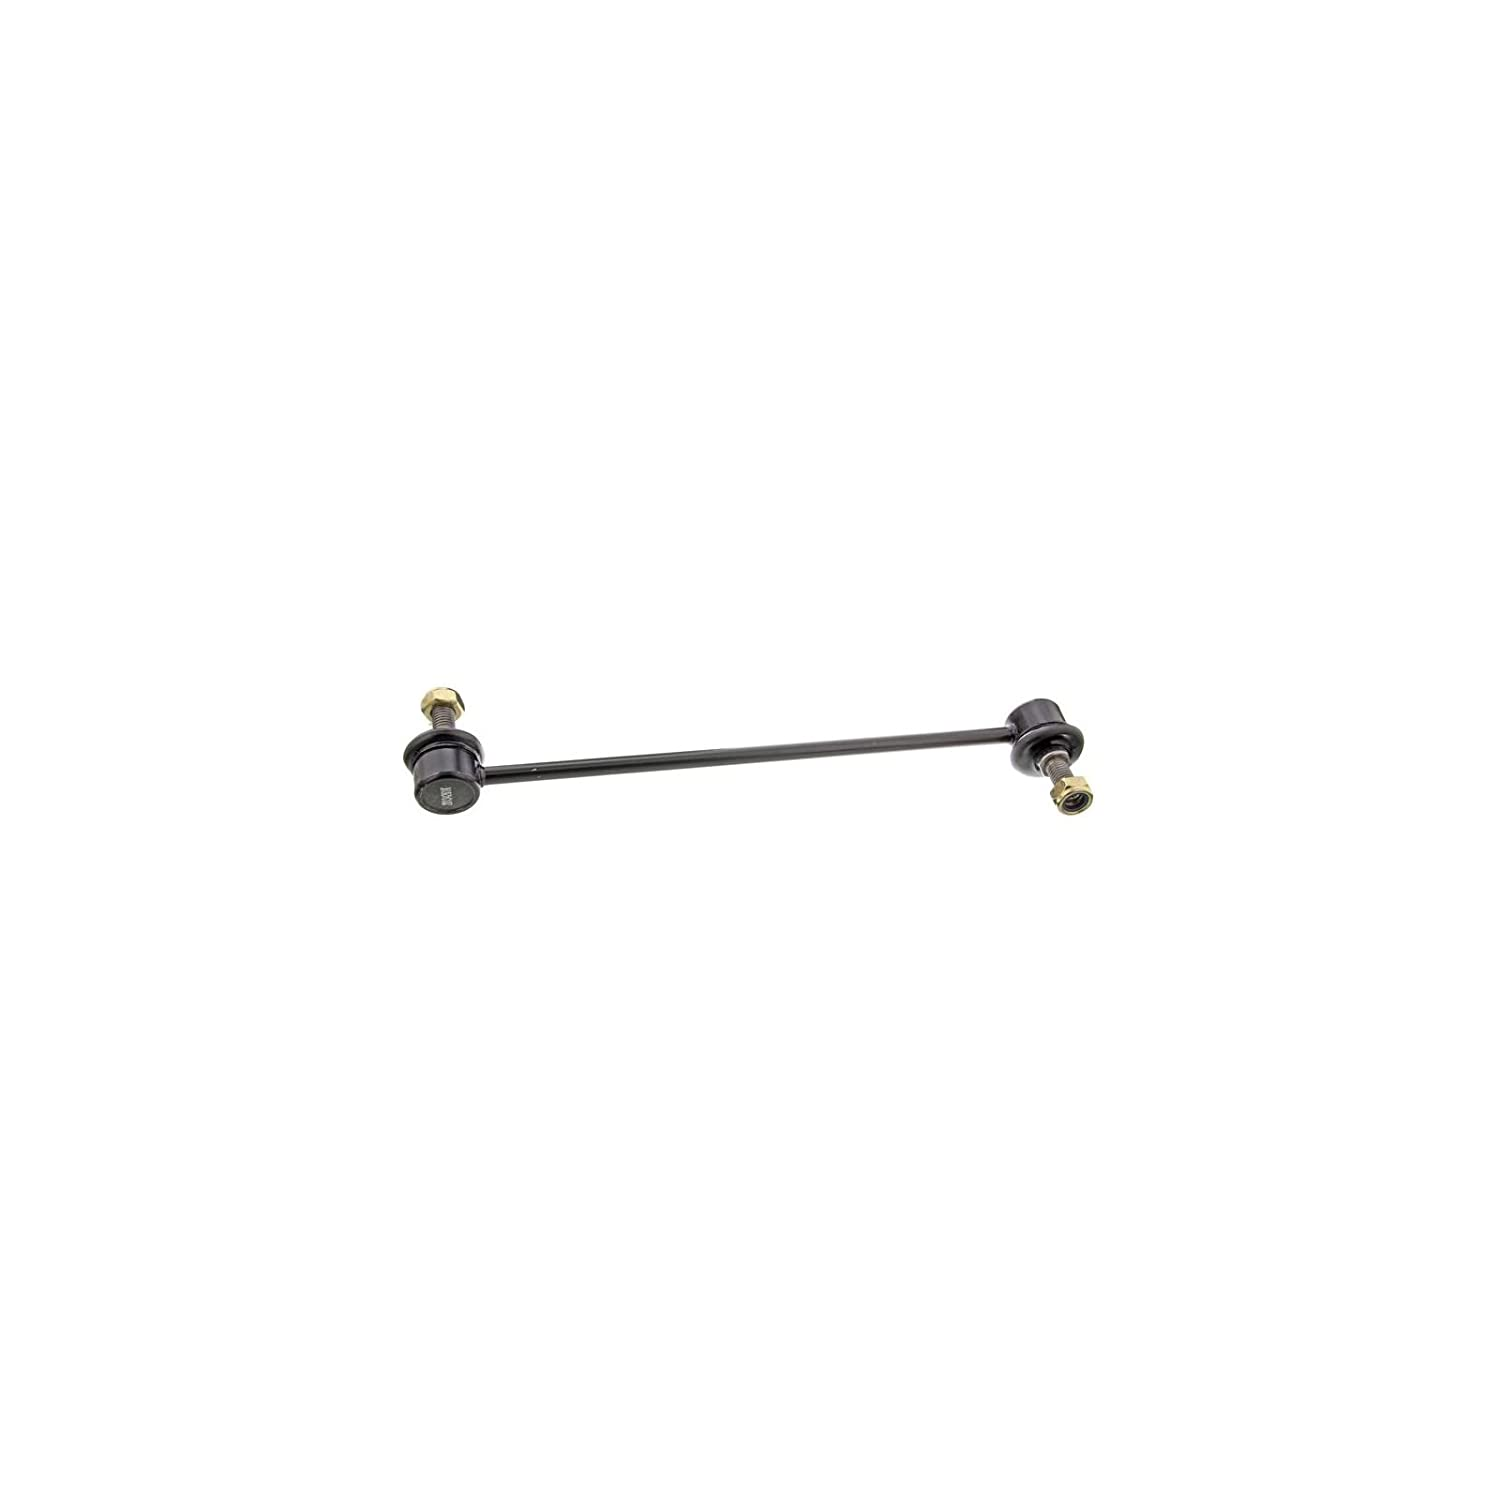 Genuine Fahren Drop Link - Part Number FAS4001 AutoMotion Factors Limited